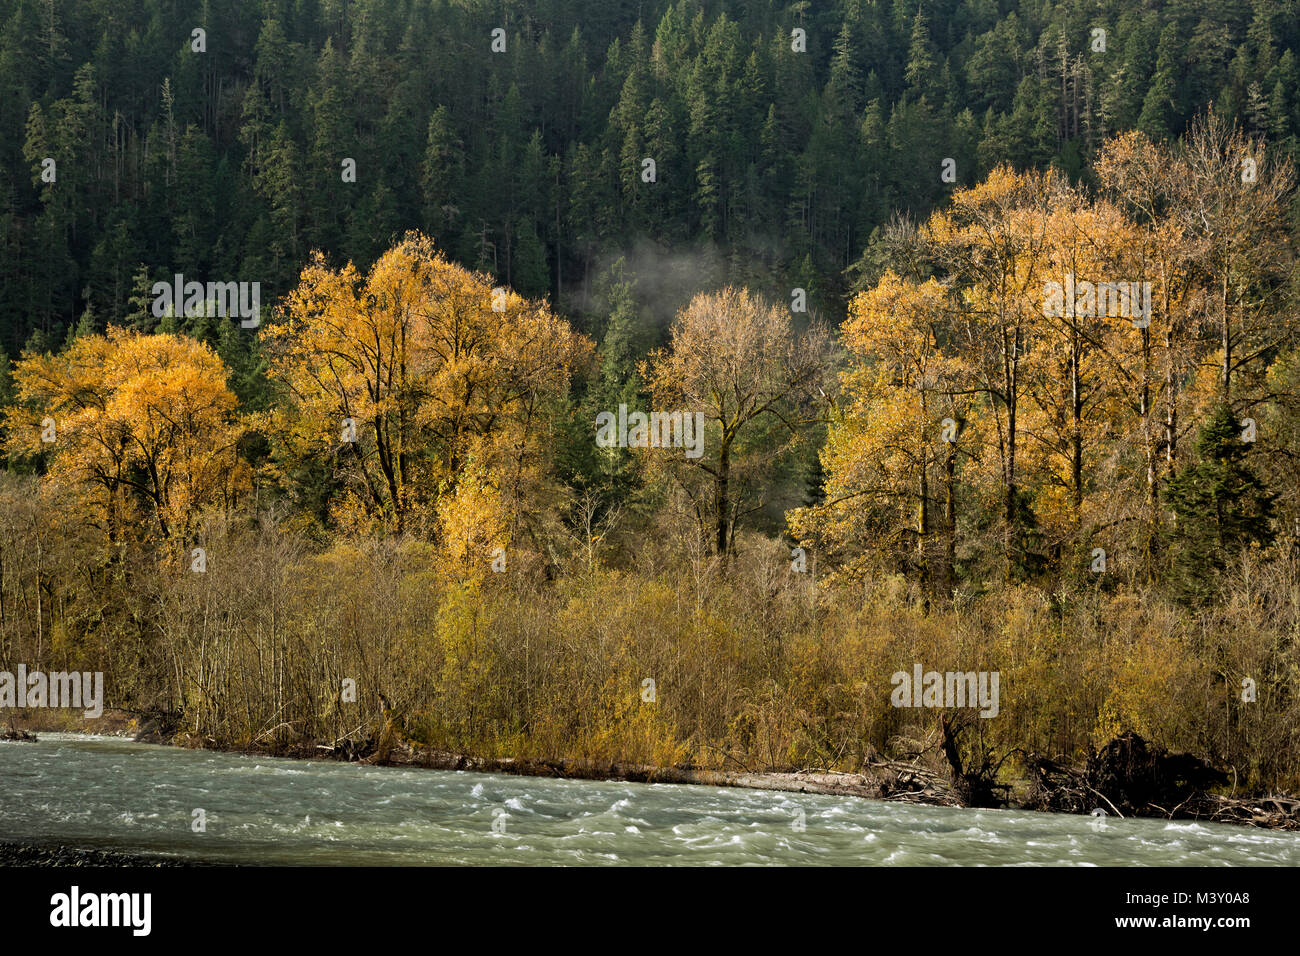 WA13371-00...WASHINGTON - Fall color along the banks of the Elwha River in Olympic National Park. - Stock Image